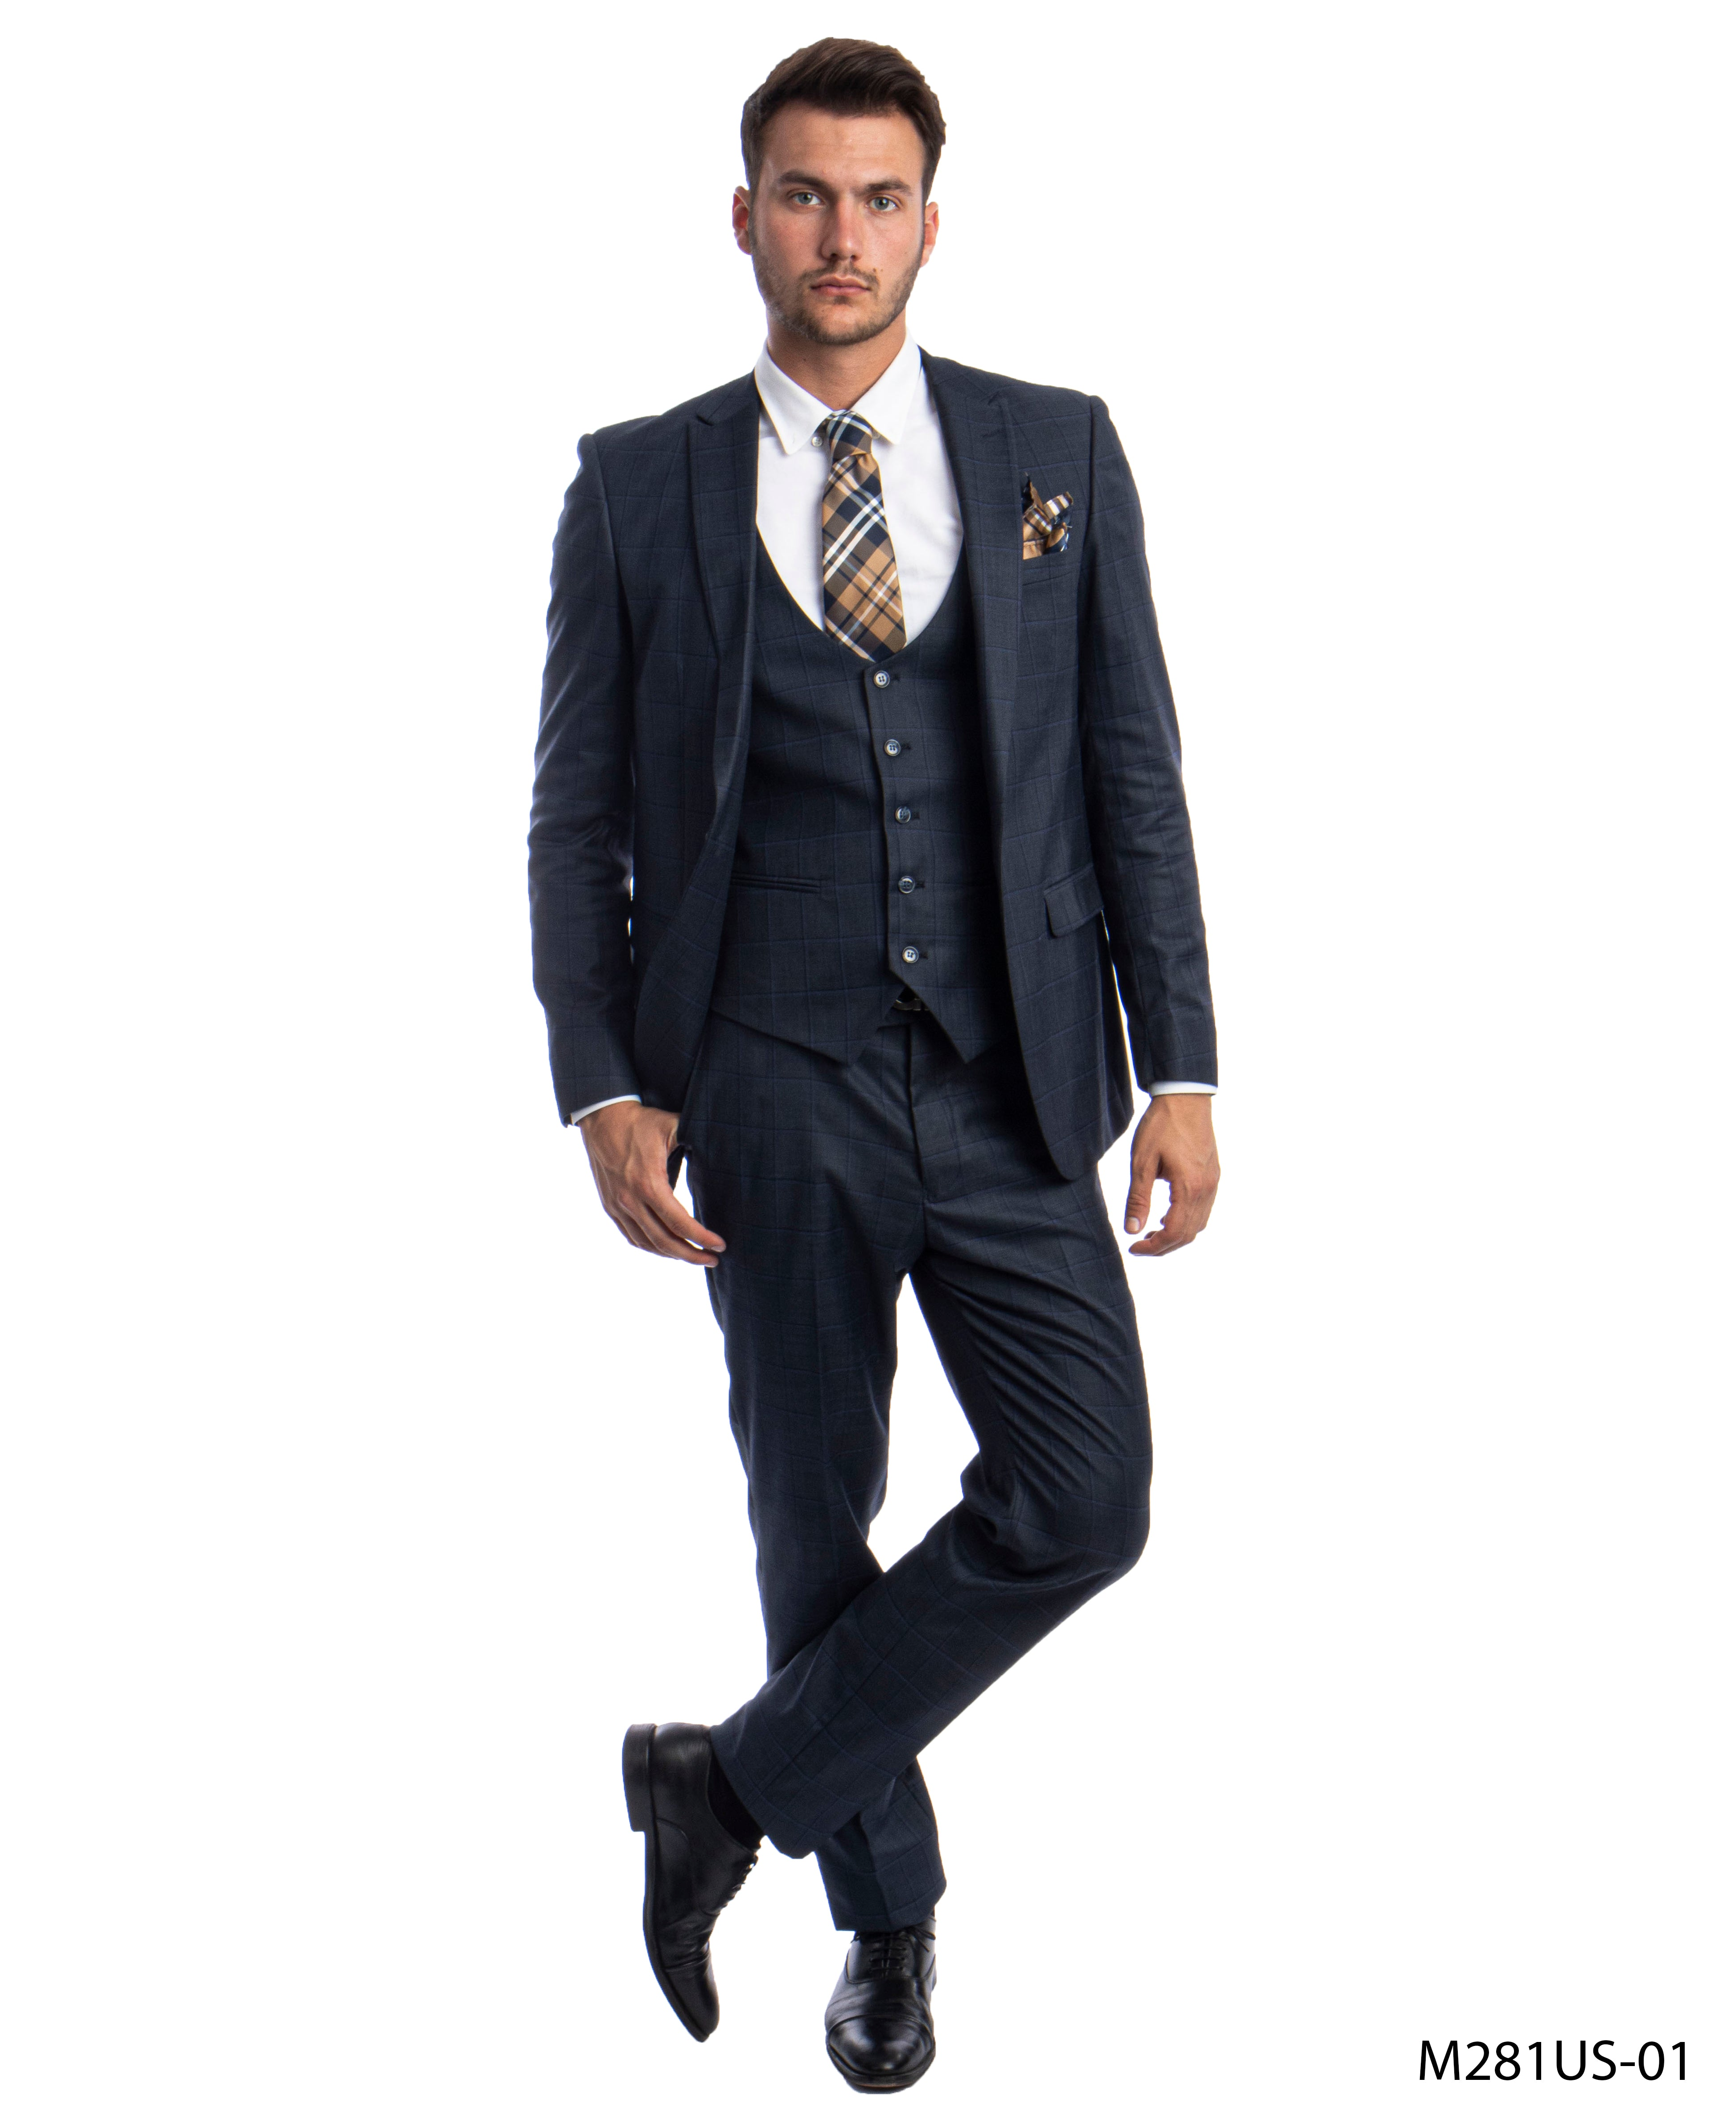 Navy/Blue Suit For Men Formal Suits For All Ocassions